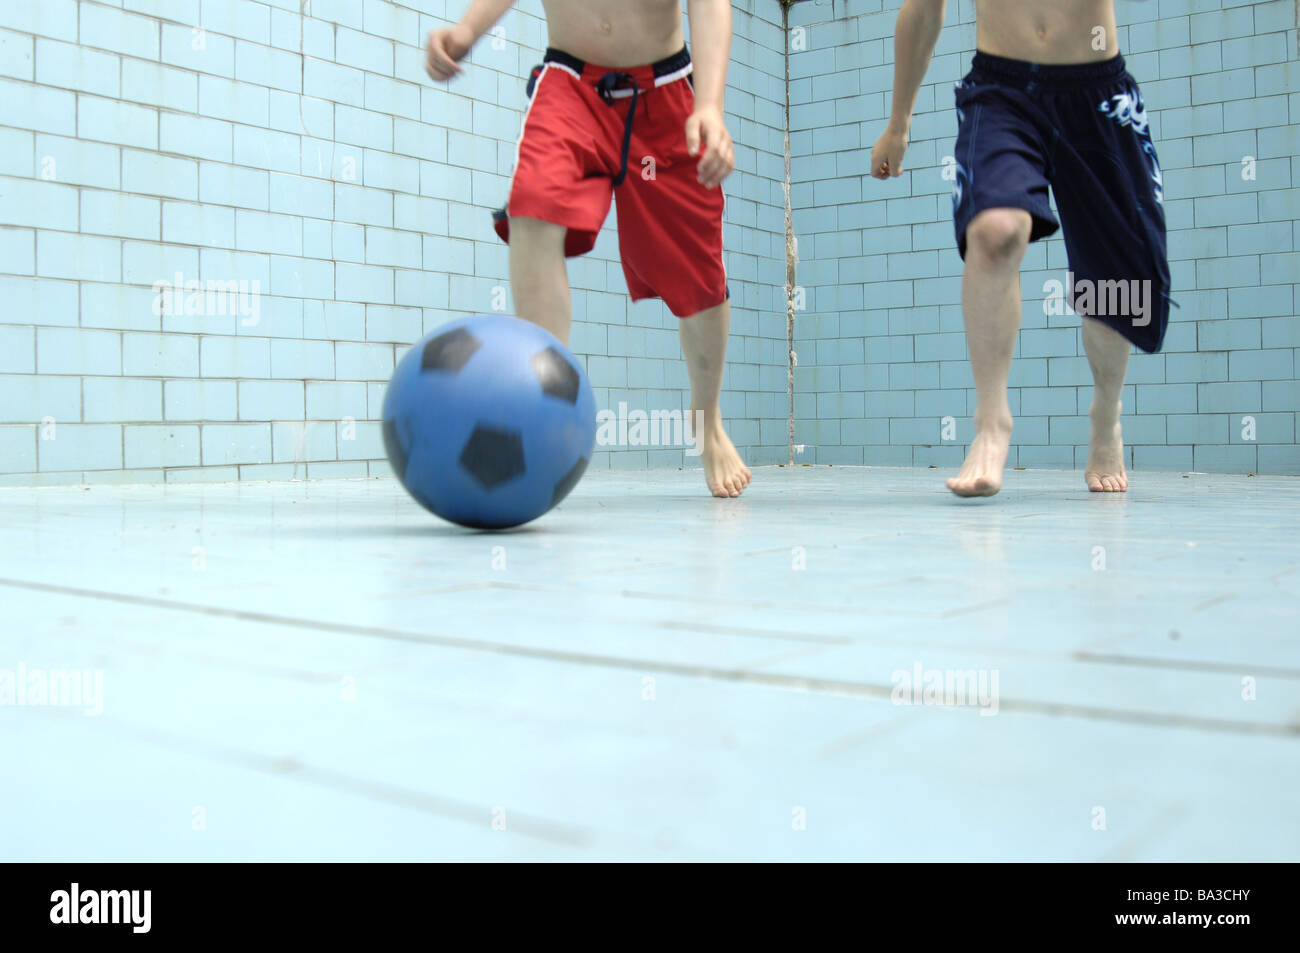 Pool empty children soccer games detail legs series people boys bath-clothing pools basin-ground tiles ball ball - Stock Image